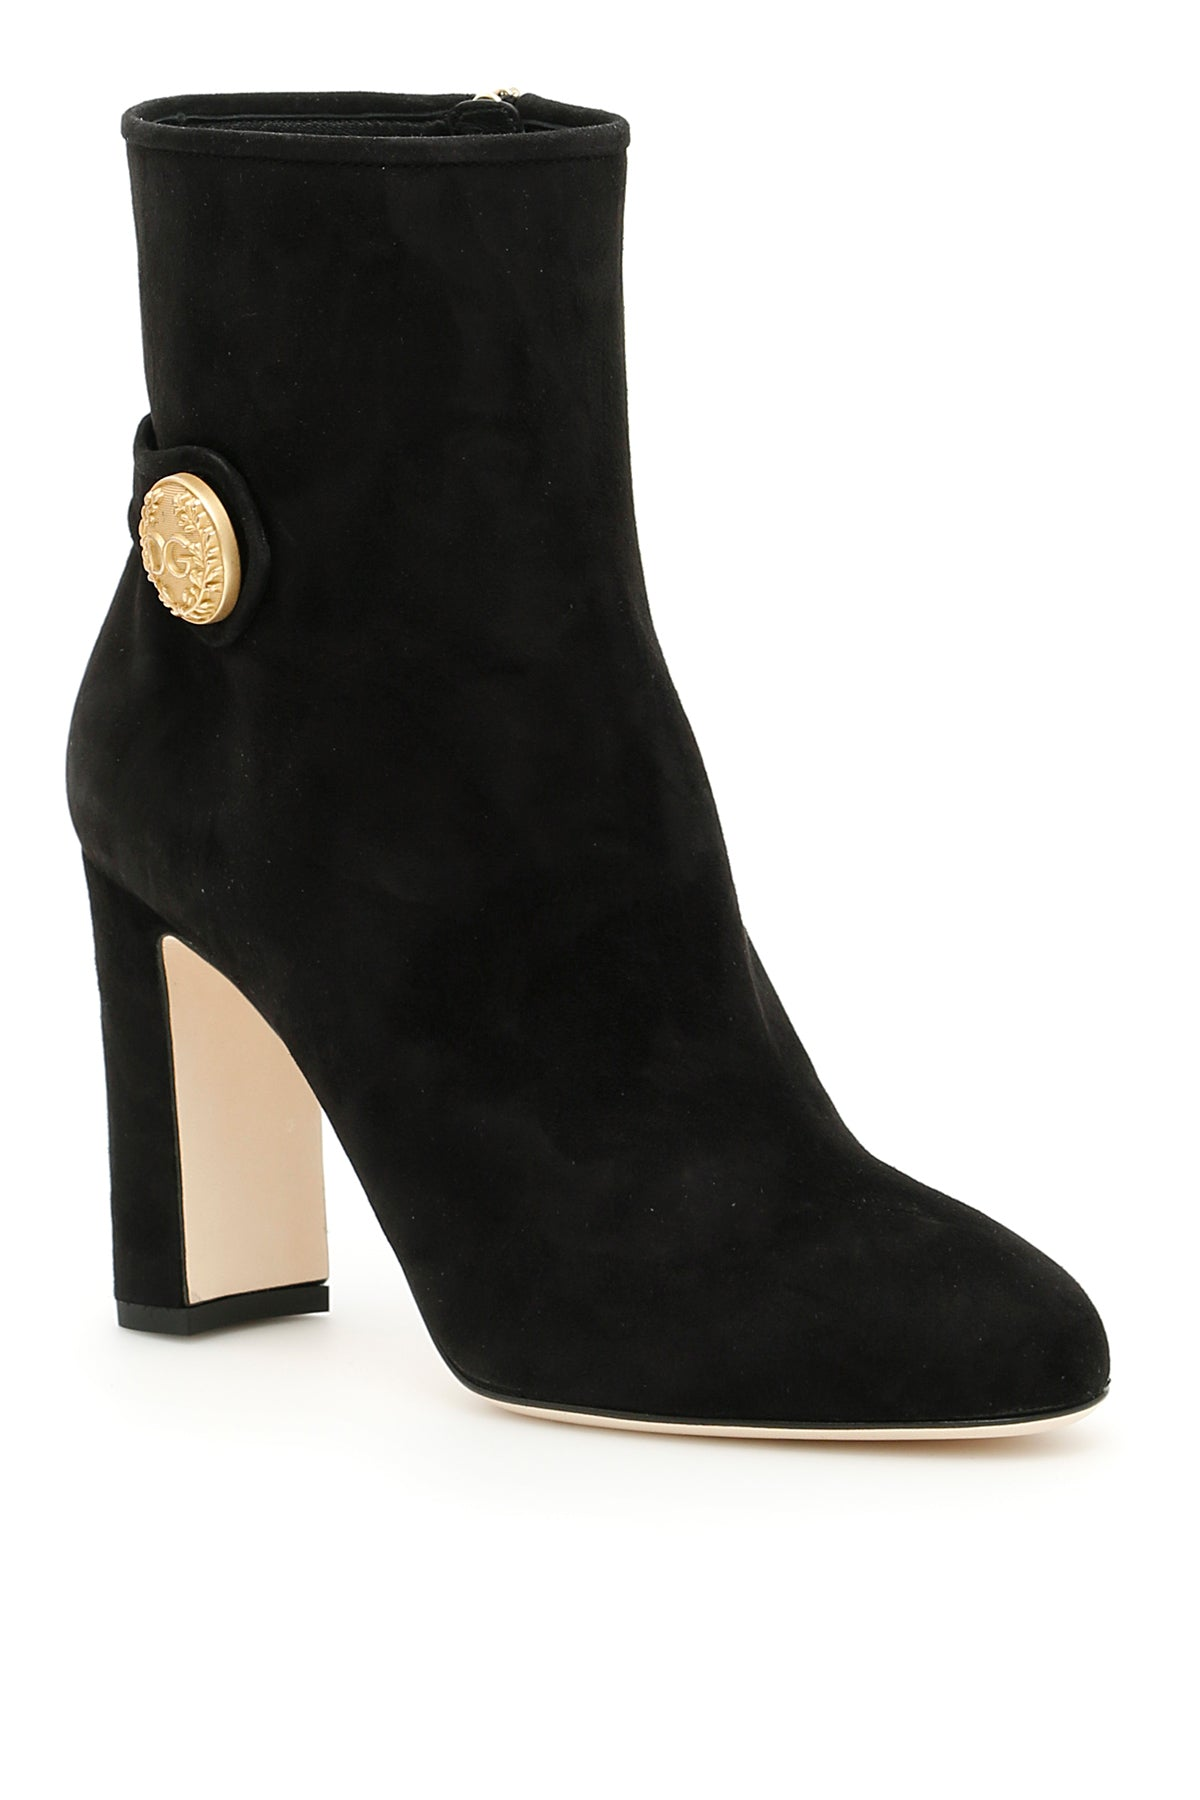 DOLCE & GABBANA SUEDE BUTTON EMBELLISHED BOOTS